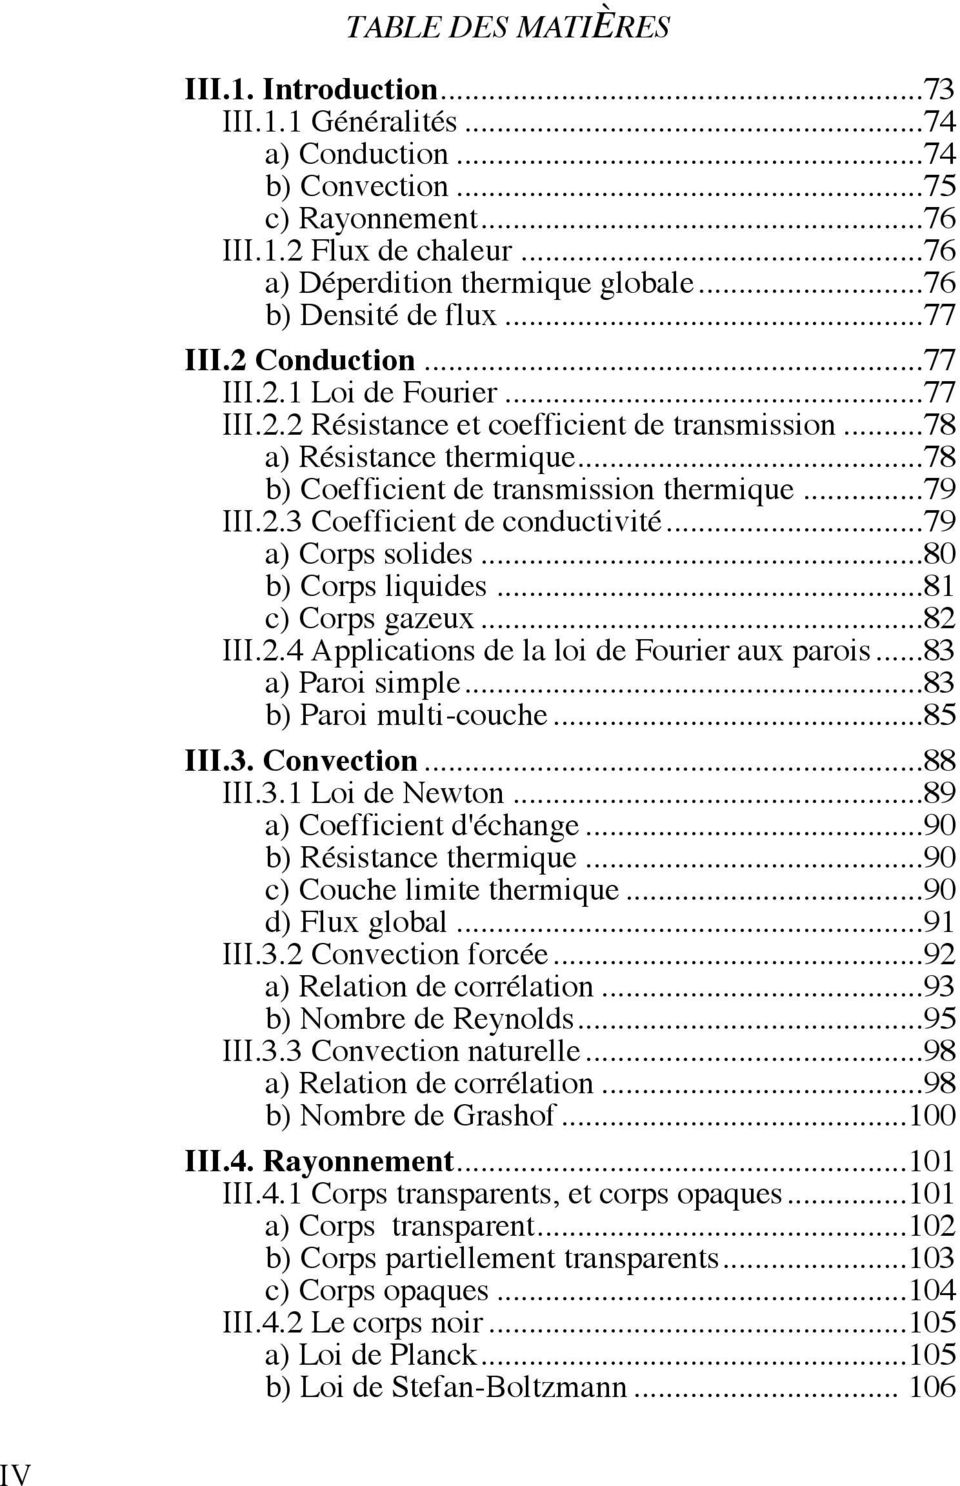 ..78 b) Coefficient de transmission thermique...79 III.2.3 Coefficient de conductivité...79 a) Corps solides...80 b) Corps liquides...81 c) Corps gazeux...82 III.2.4 Applications de la loi de Fourier aux parois.